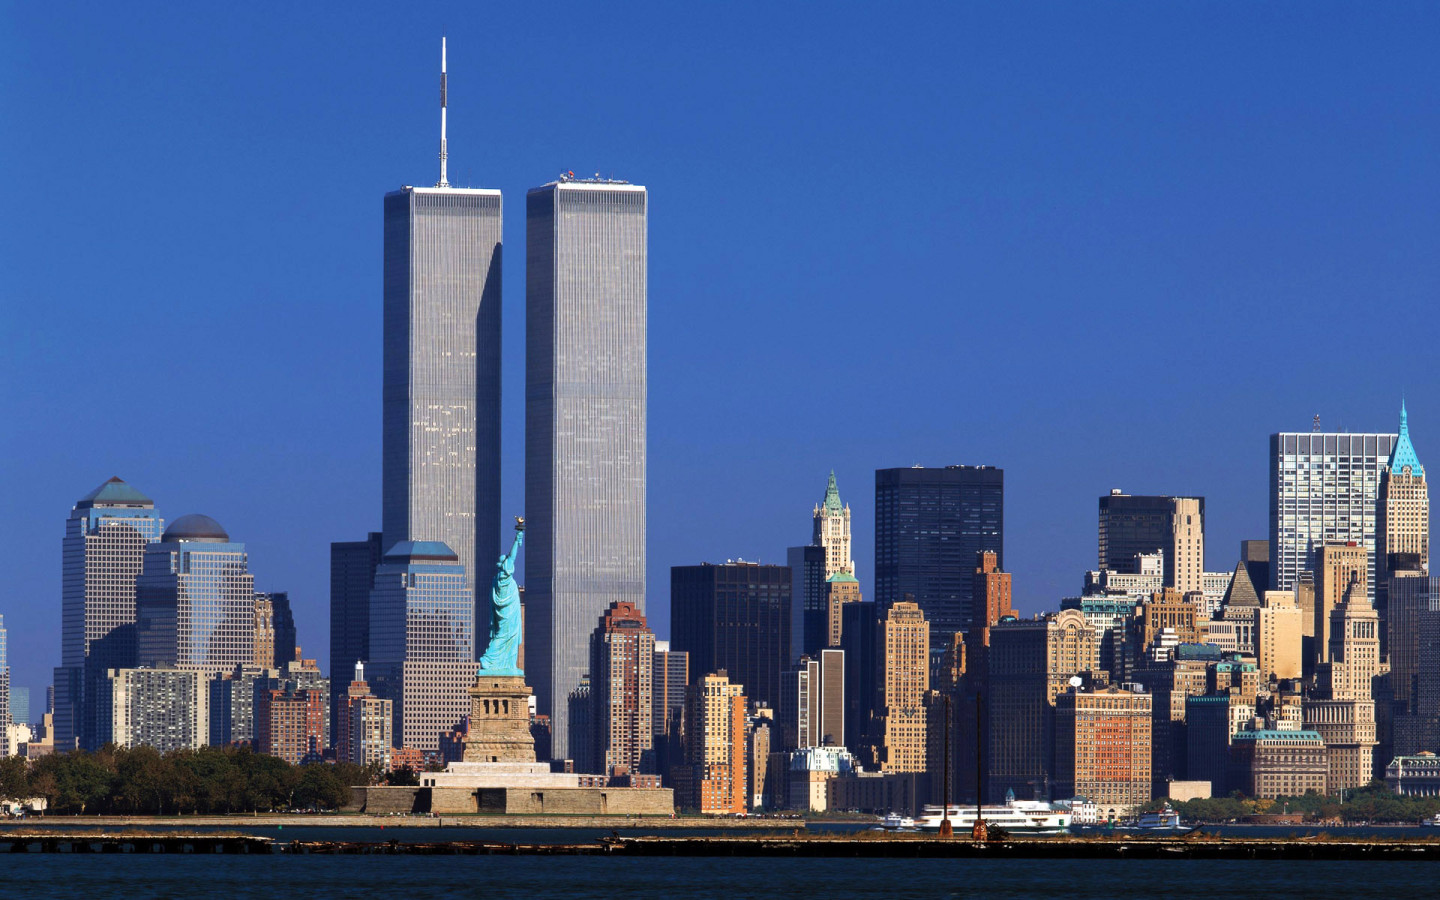 http://3.bp.blogspot.com/-DGpFltpnnEY/TjKbL-IhUpI/AAAAAAAAAl0/GWEFLqQ5_I8/s1600/new_york_wallpaper.jpg